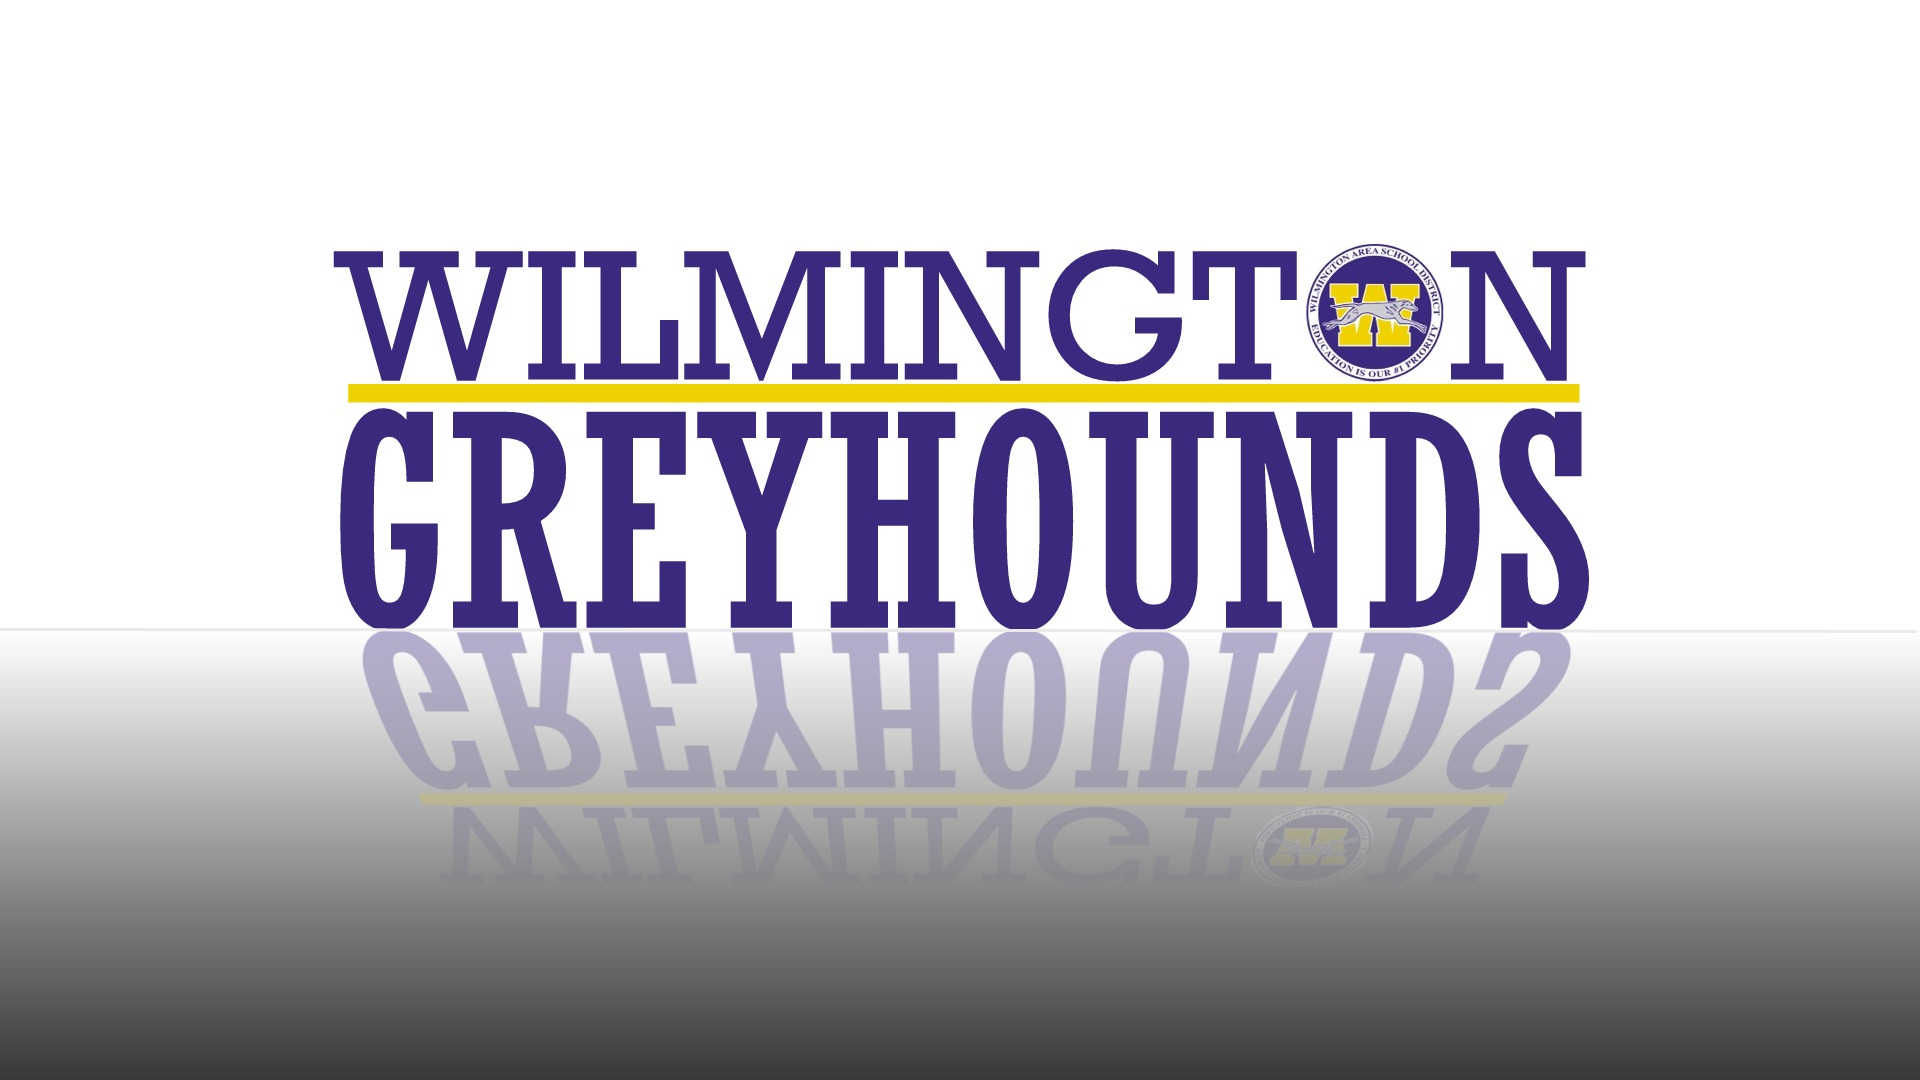 Home of the Greyhounds